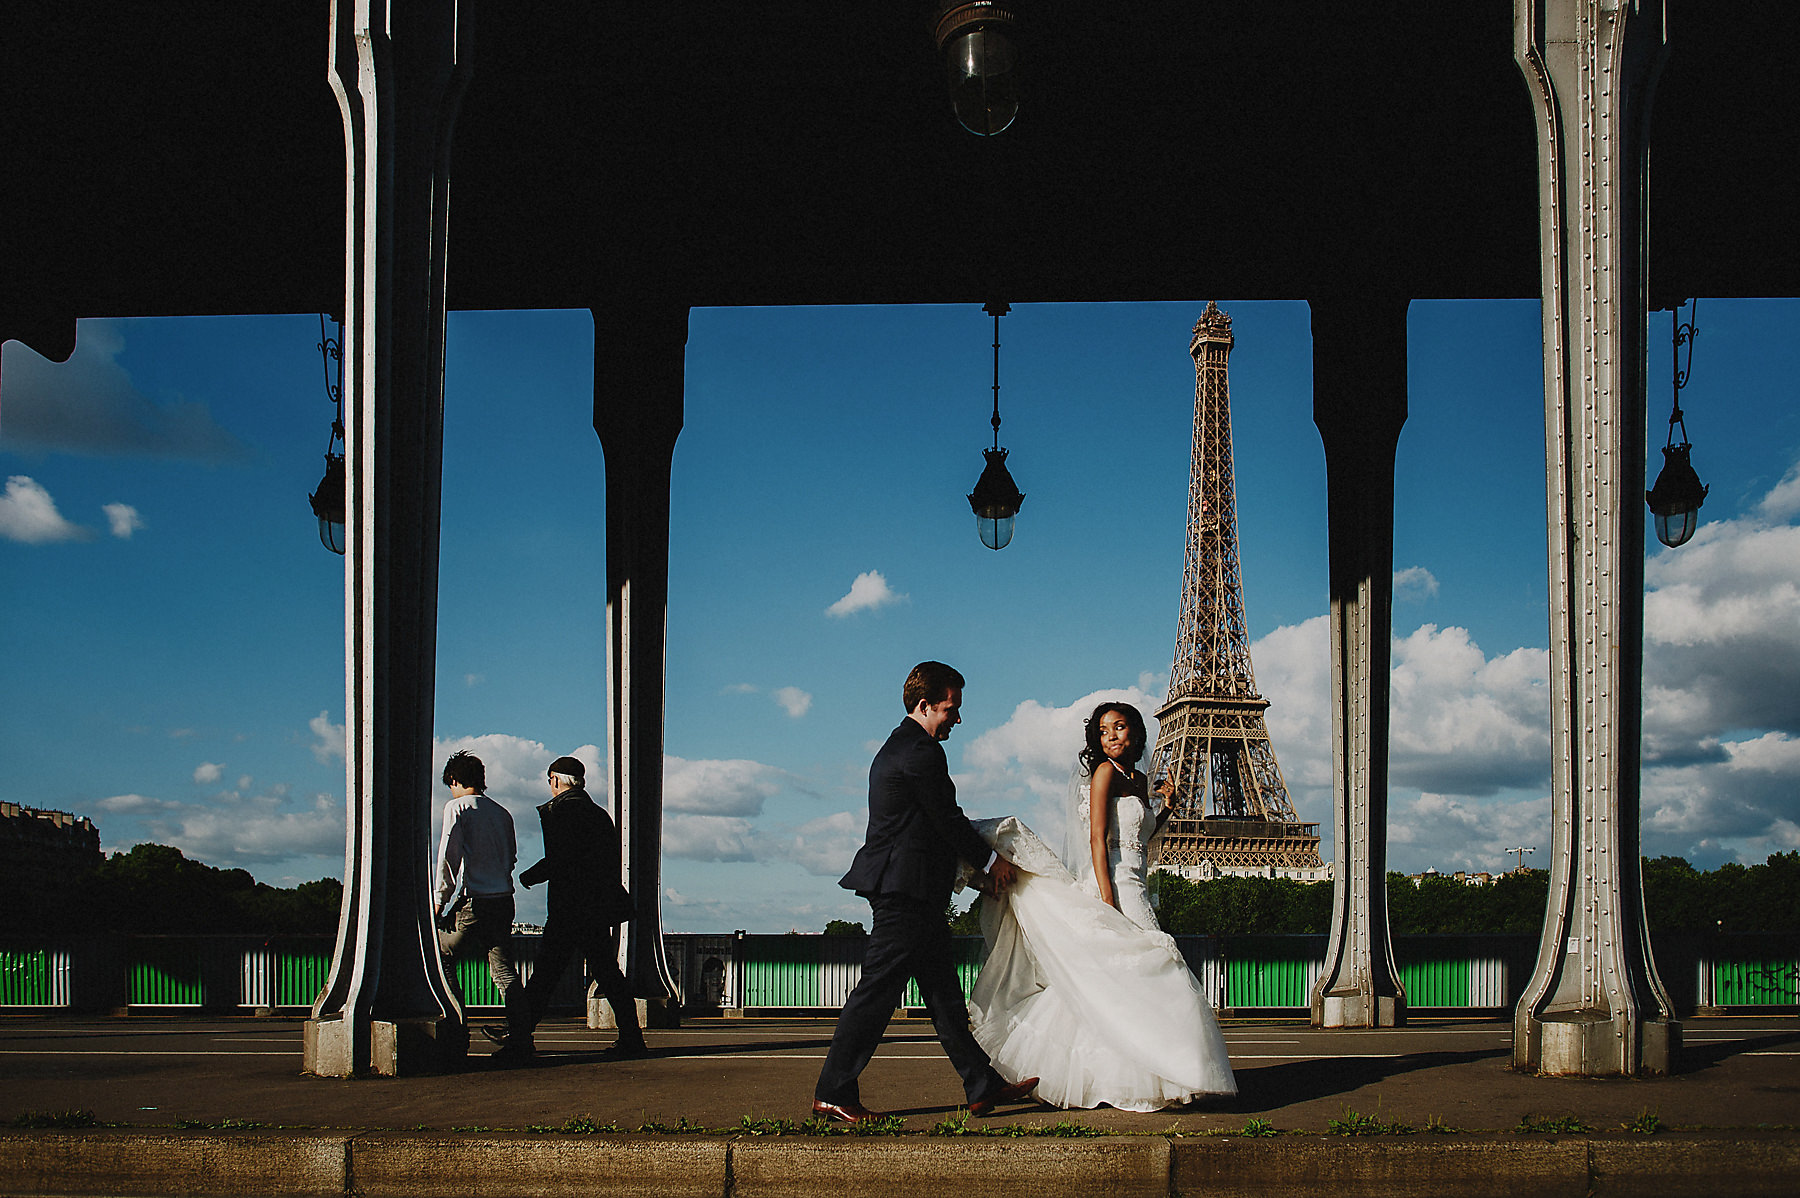 Arc de triomphe wedding